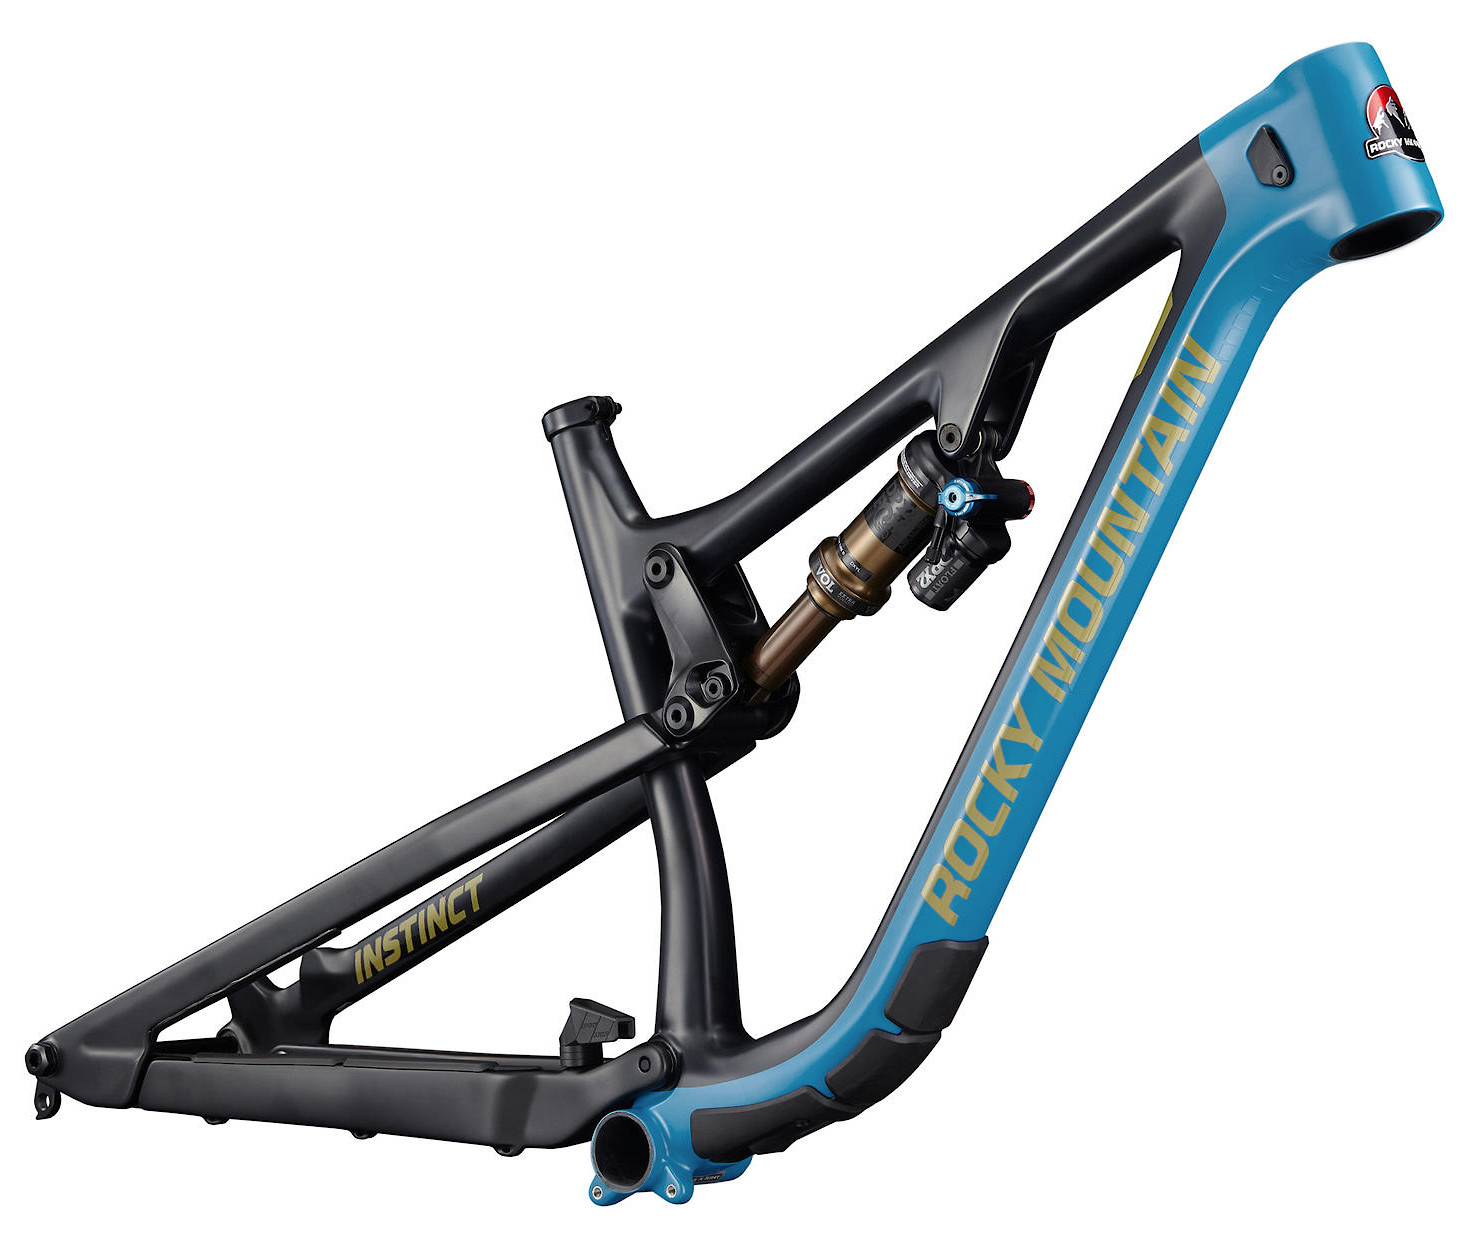 2020 Rocky Mountain Instinct Carbon Frame BC Edition Black Blue and Yellow